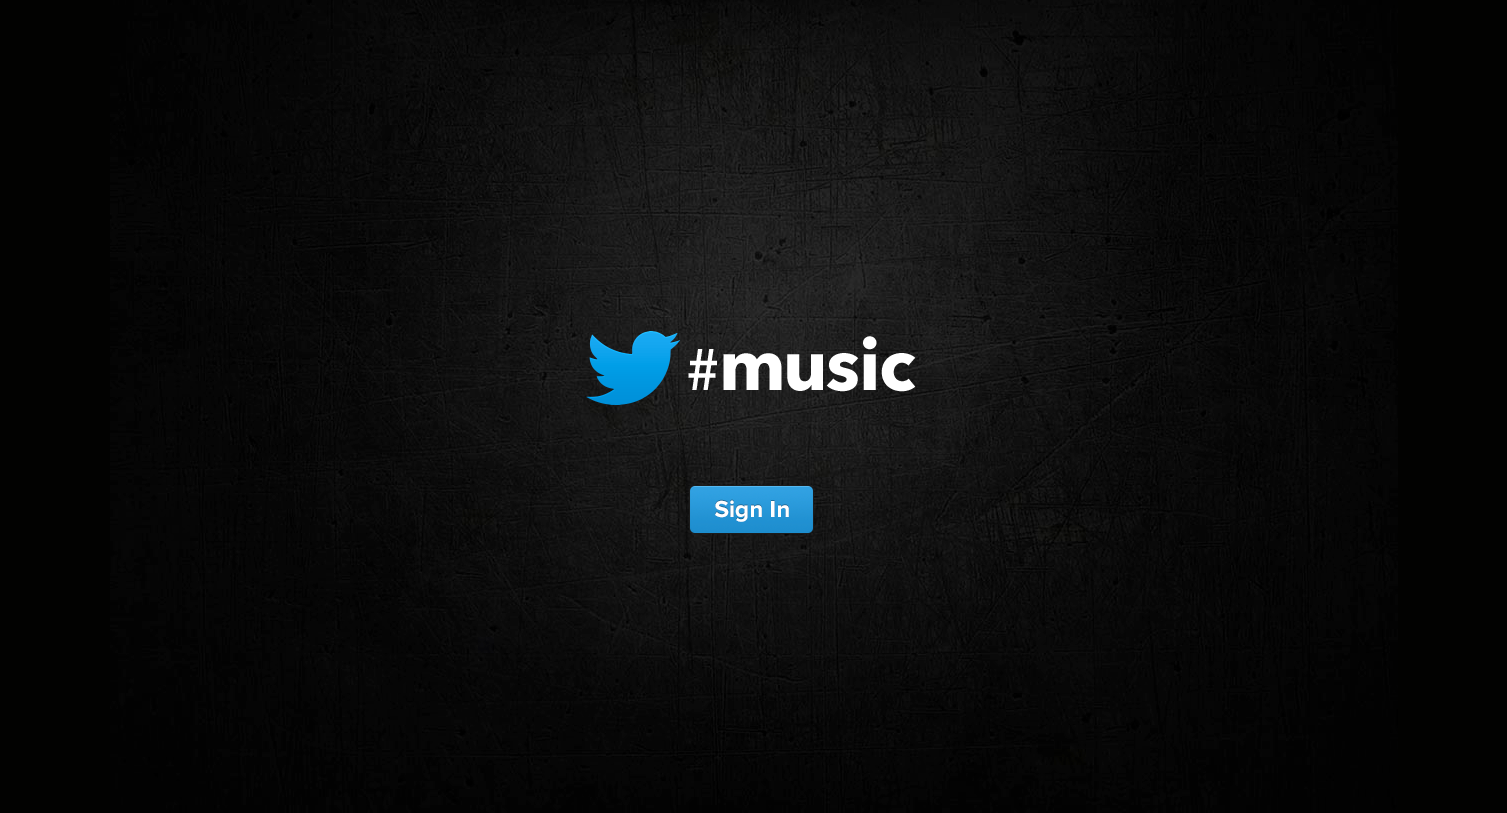 The New Twitter Music Service Launches, But Not For You